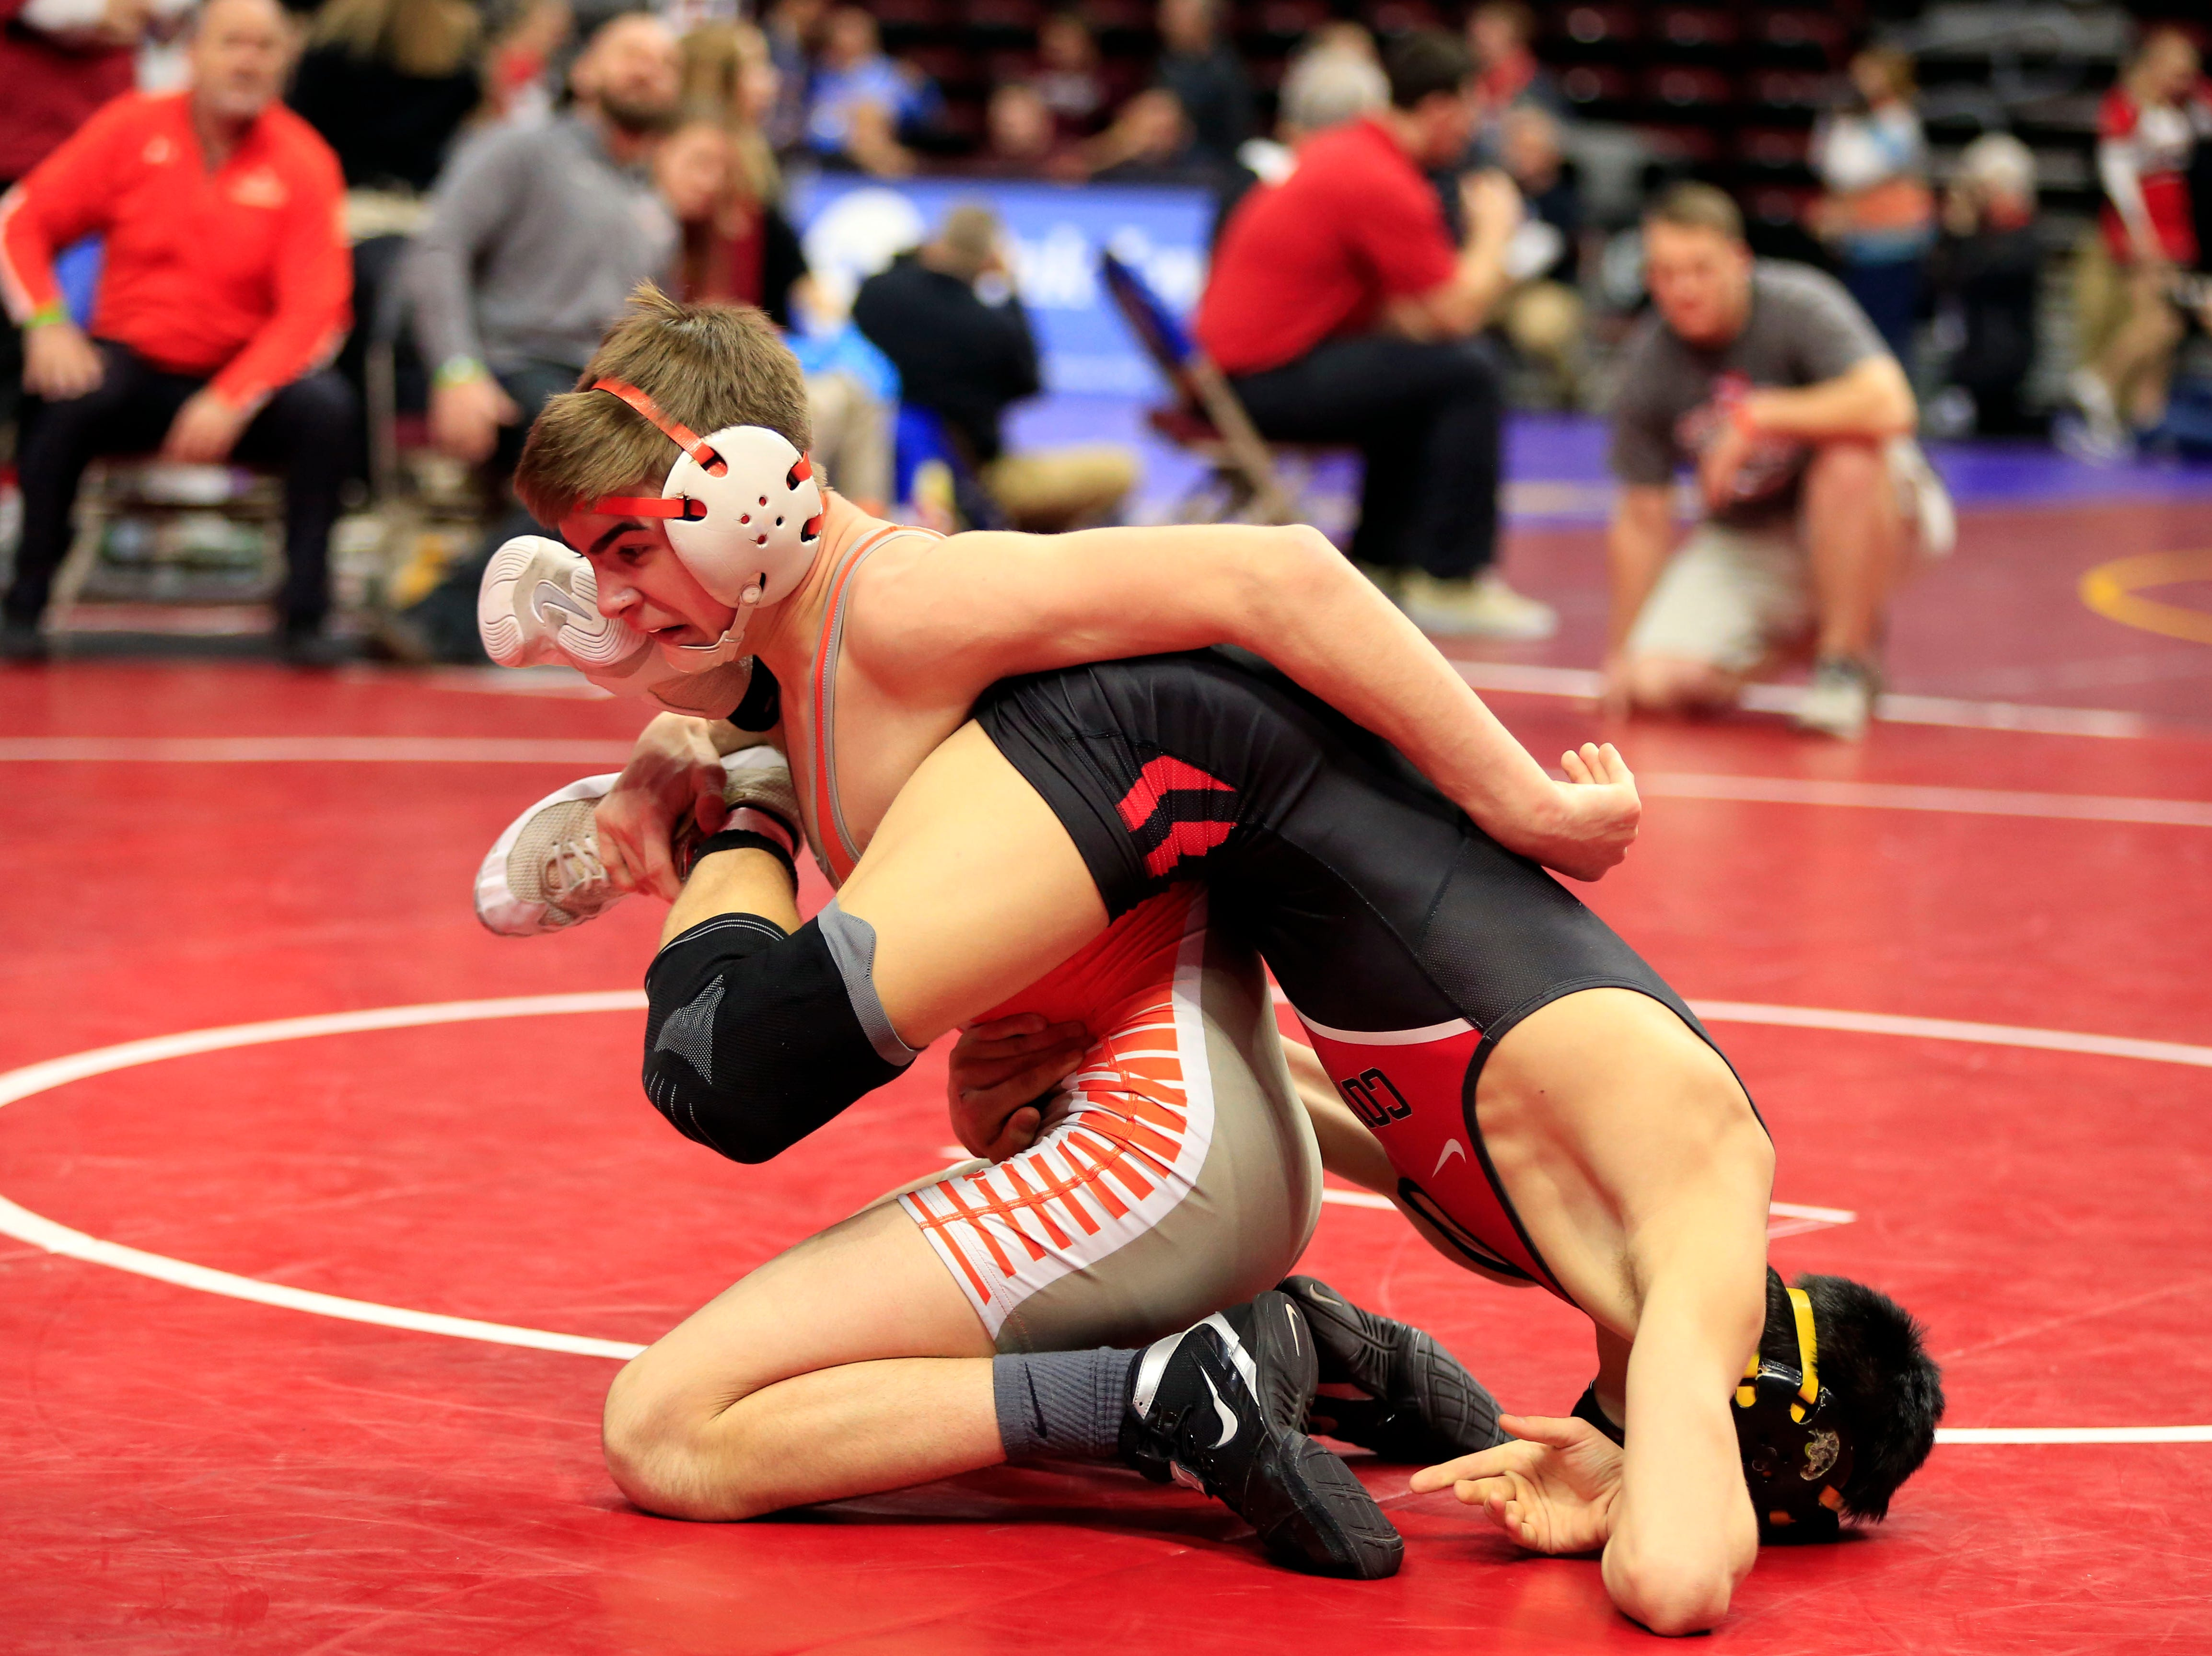 Jack Gaukel of Sergeant Bluff-Luton defeated Remington Hanson of Clarion-Goldfield-Dows during a 132 Lb 2A quarterfinal match at the state wrestling tournament Friday, Feb. 15, 2019.